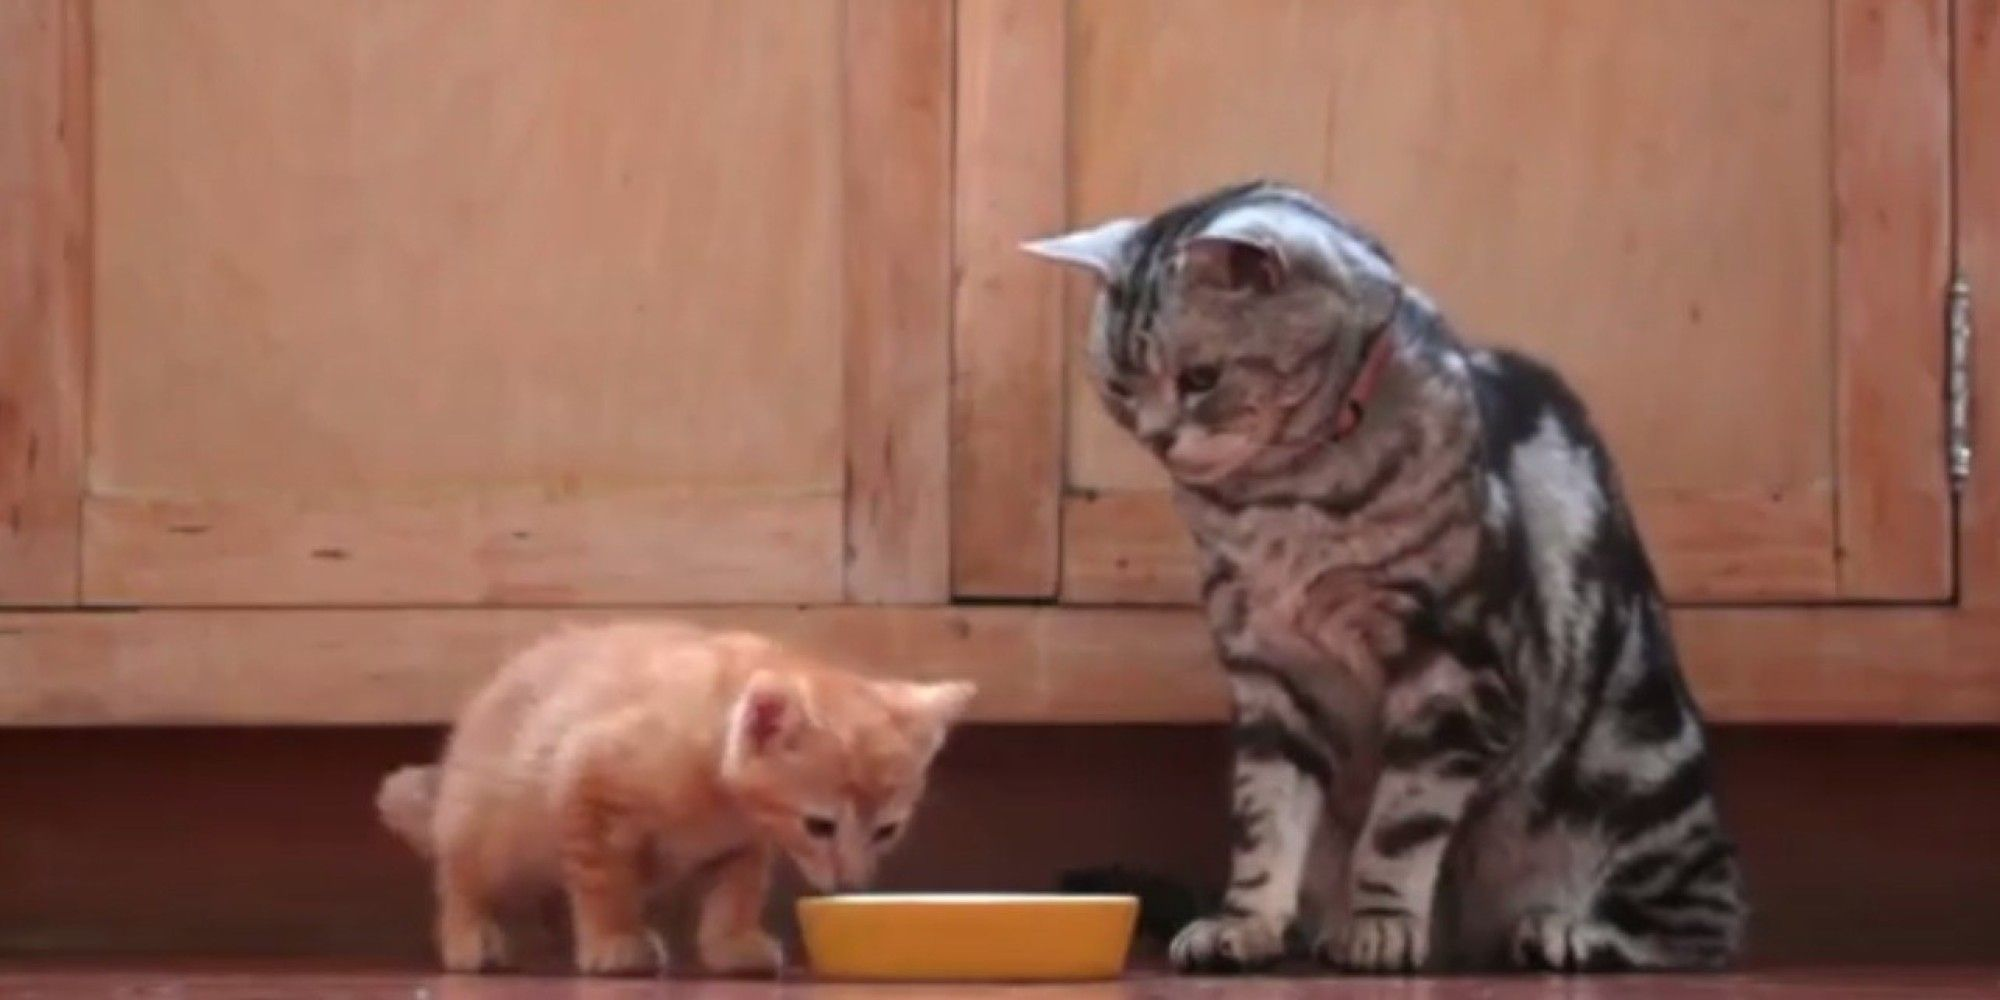 Adorable Kitten Gets Advice From A Grumpy Old Cat Crazy Cats Old Cats Adorable Kitten